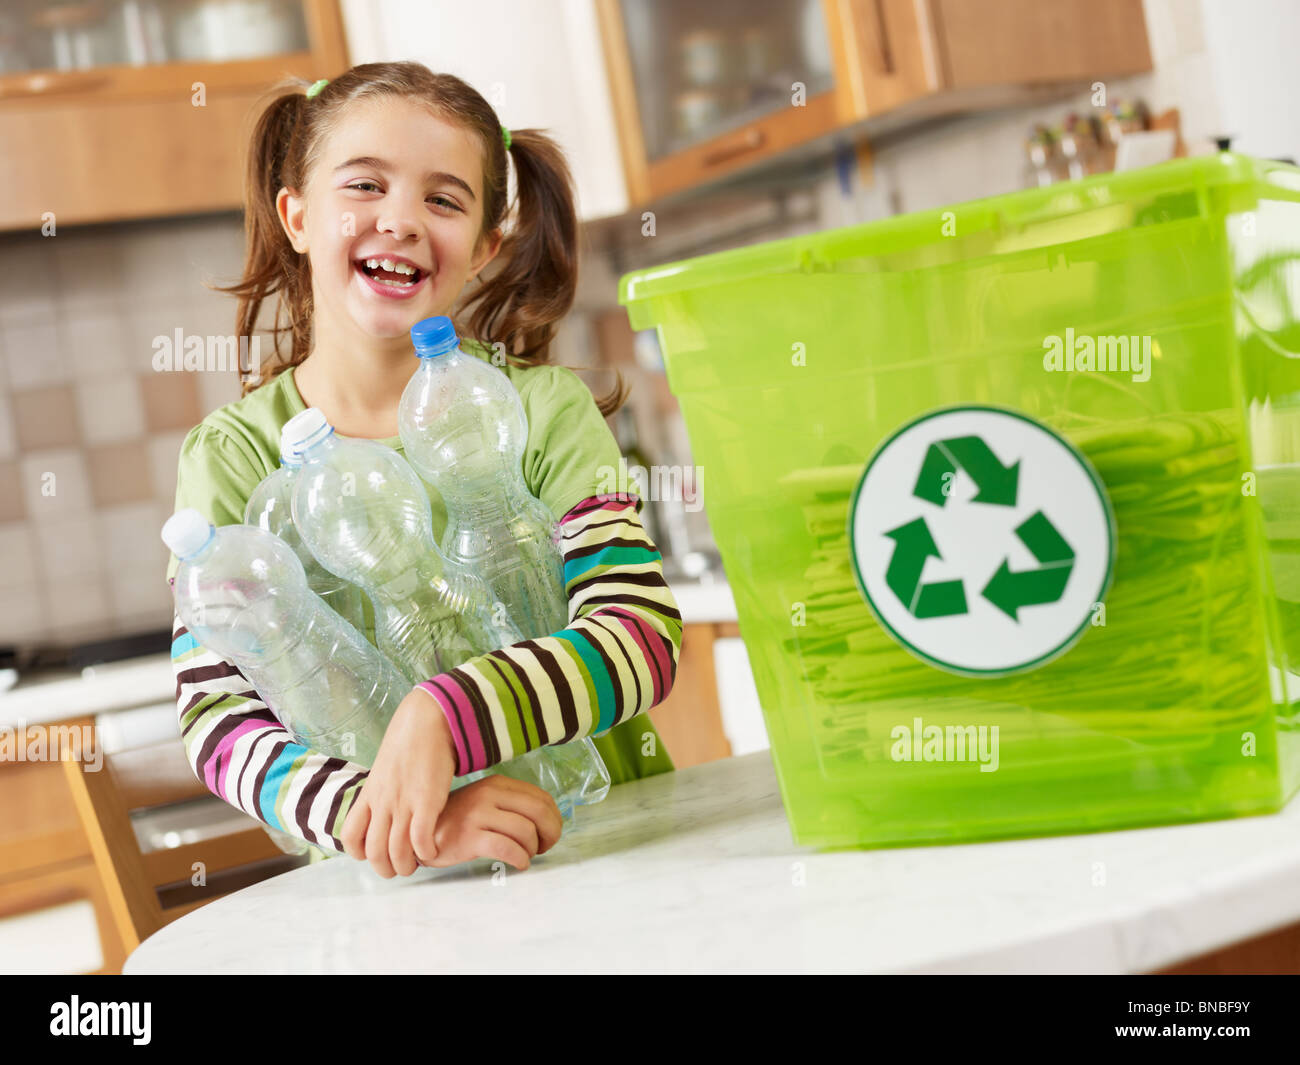 Girl holding plastic bottles for recycling - Stock Image